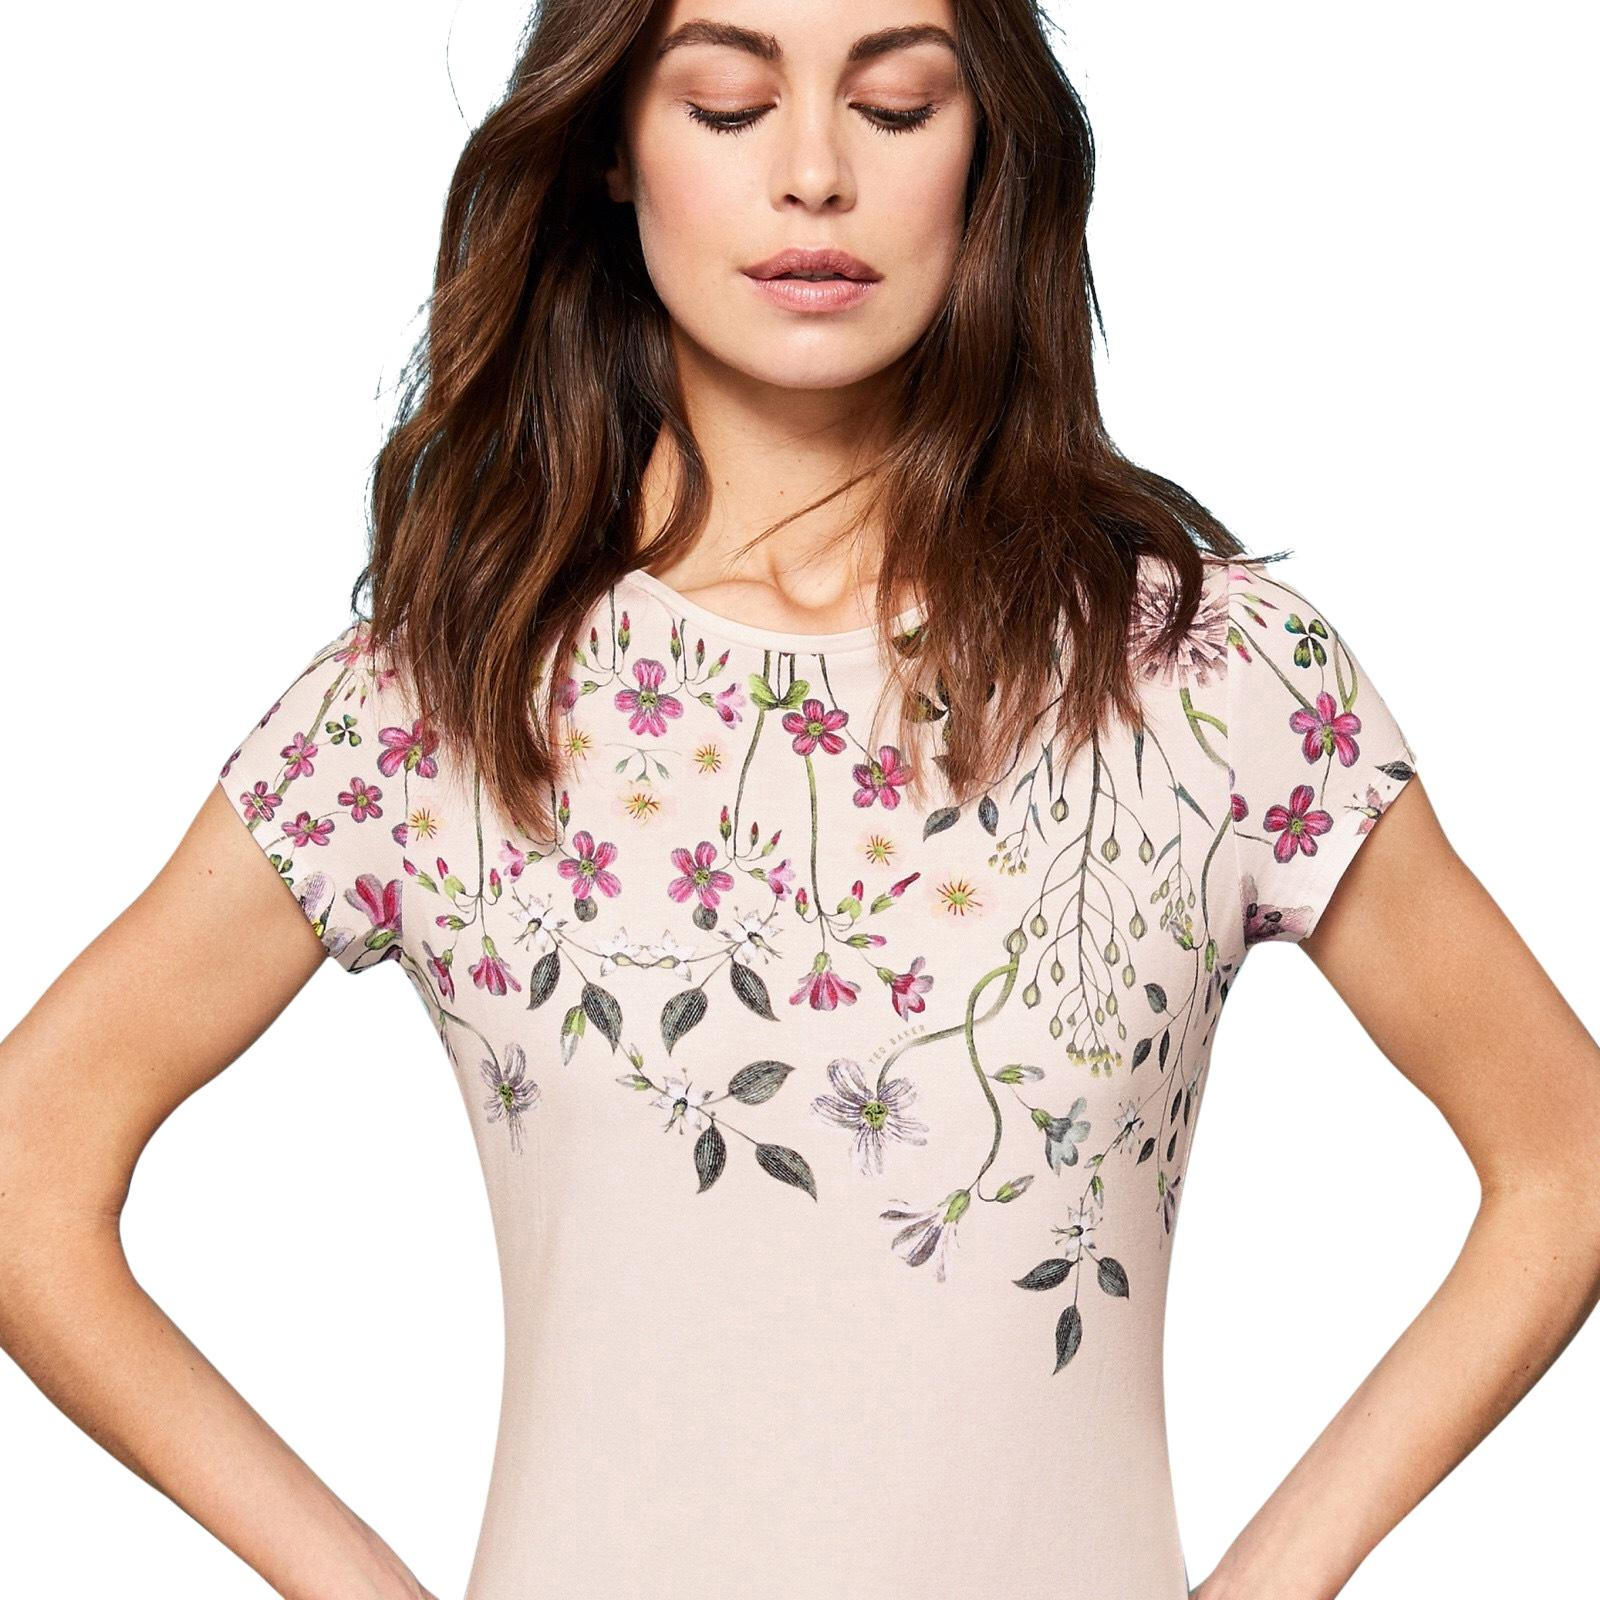 Ted Baker T Shirt Baby Pink ...